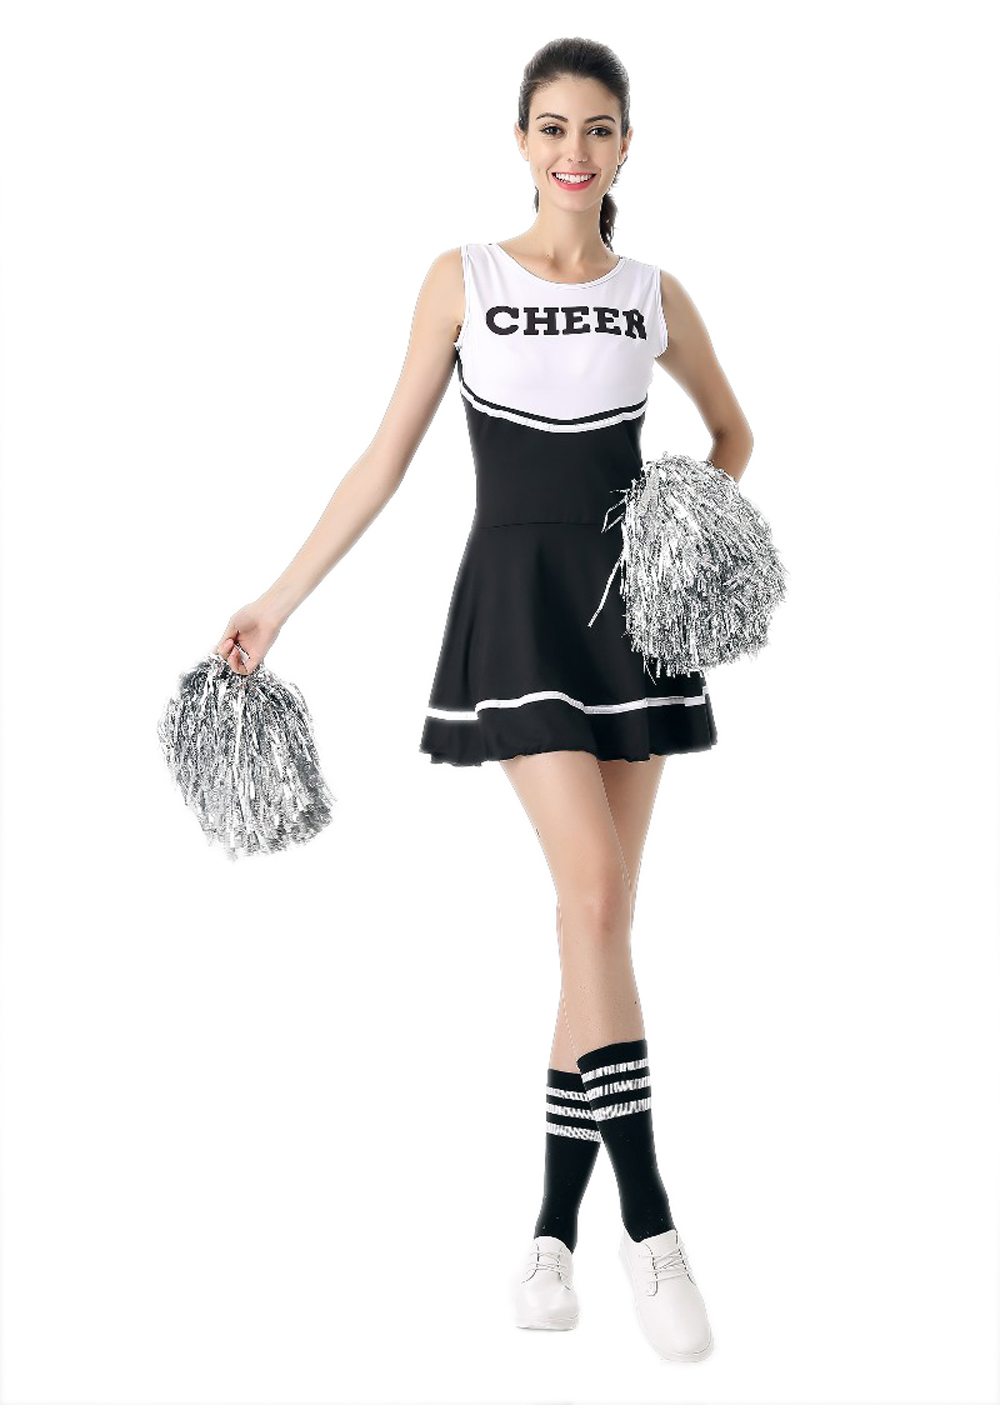 Cheerleader Costume Women - Black White Sport Fancy Sexy Cheerleader Dress Cheer Uniforms For Girls Party Outfit